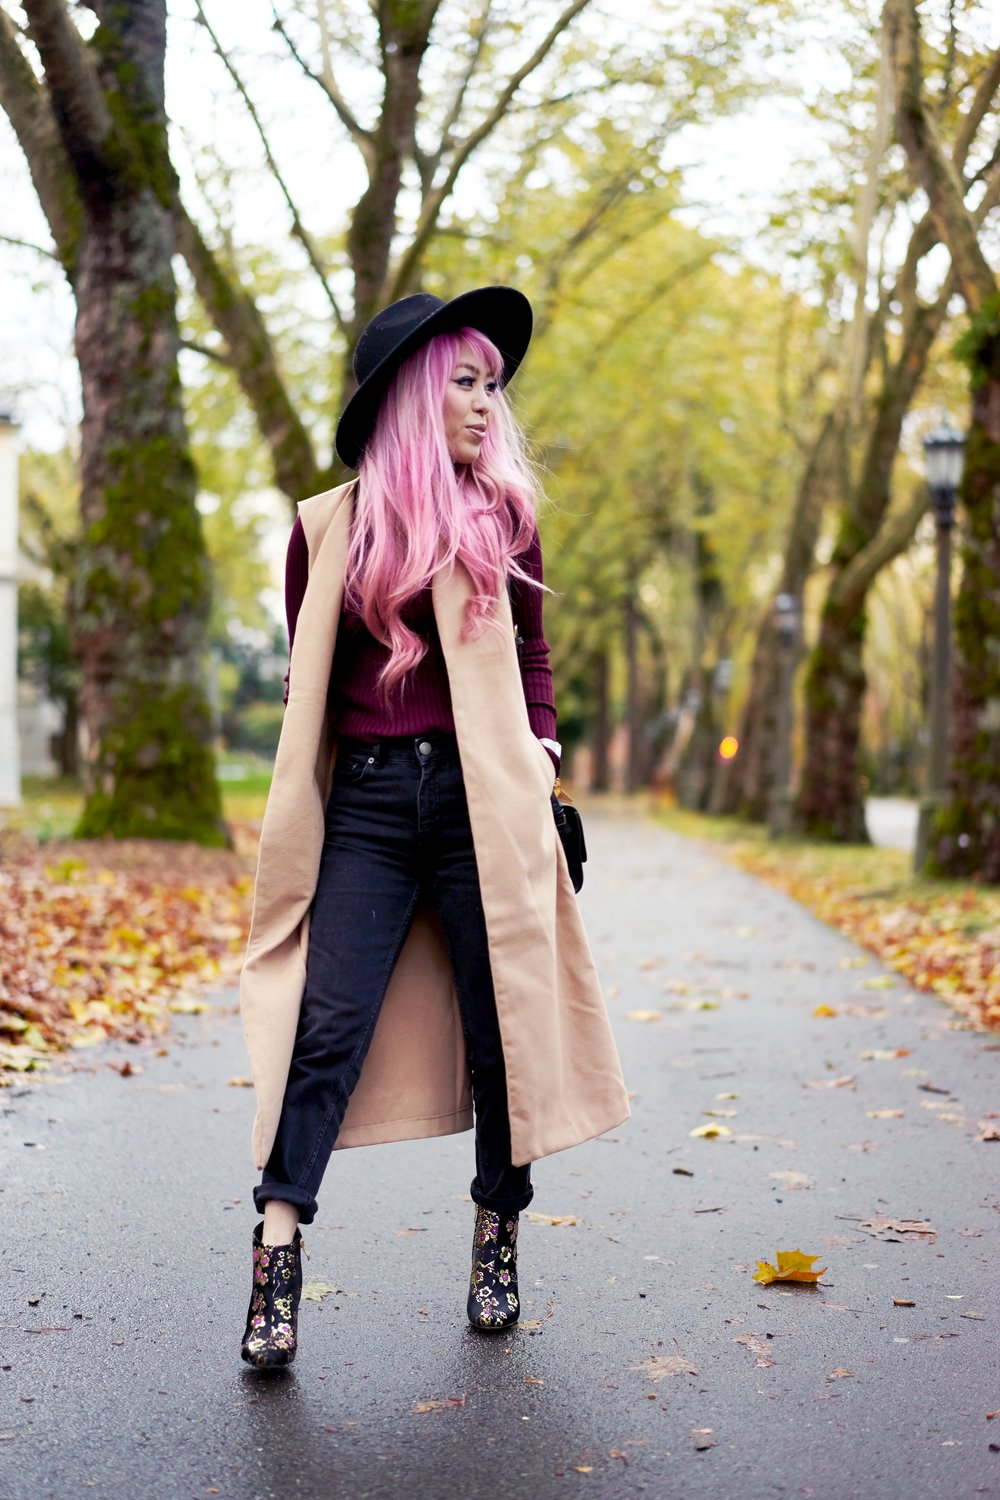 Forever 21 Fedora_Who What Wear : Target Rib Turtleneck_ASOS High Waist Mom Jeans_Ego Floral Print Ankle Boots_Christian Paul Marble Watch_Aika's Love Closet_Seattle Fashion Blogger_Japanese_Pink Hair 15